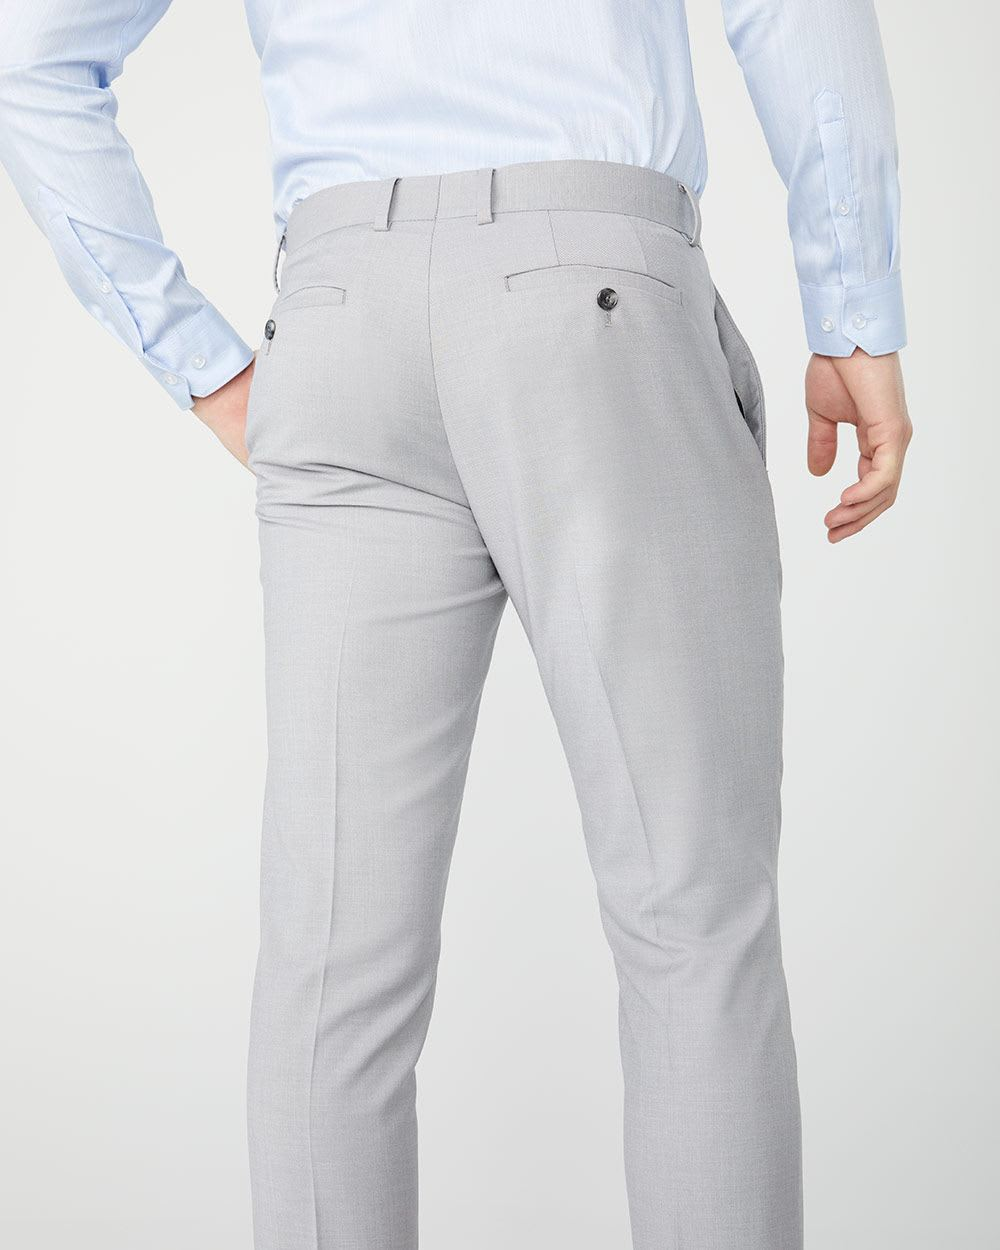 Essential Slim Fit stretch light heather grey suit Pant - 30''